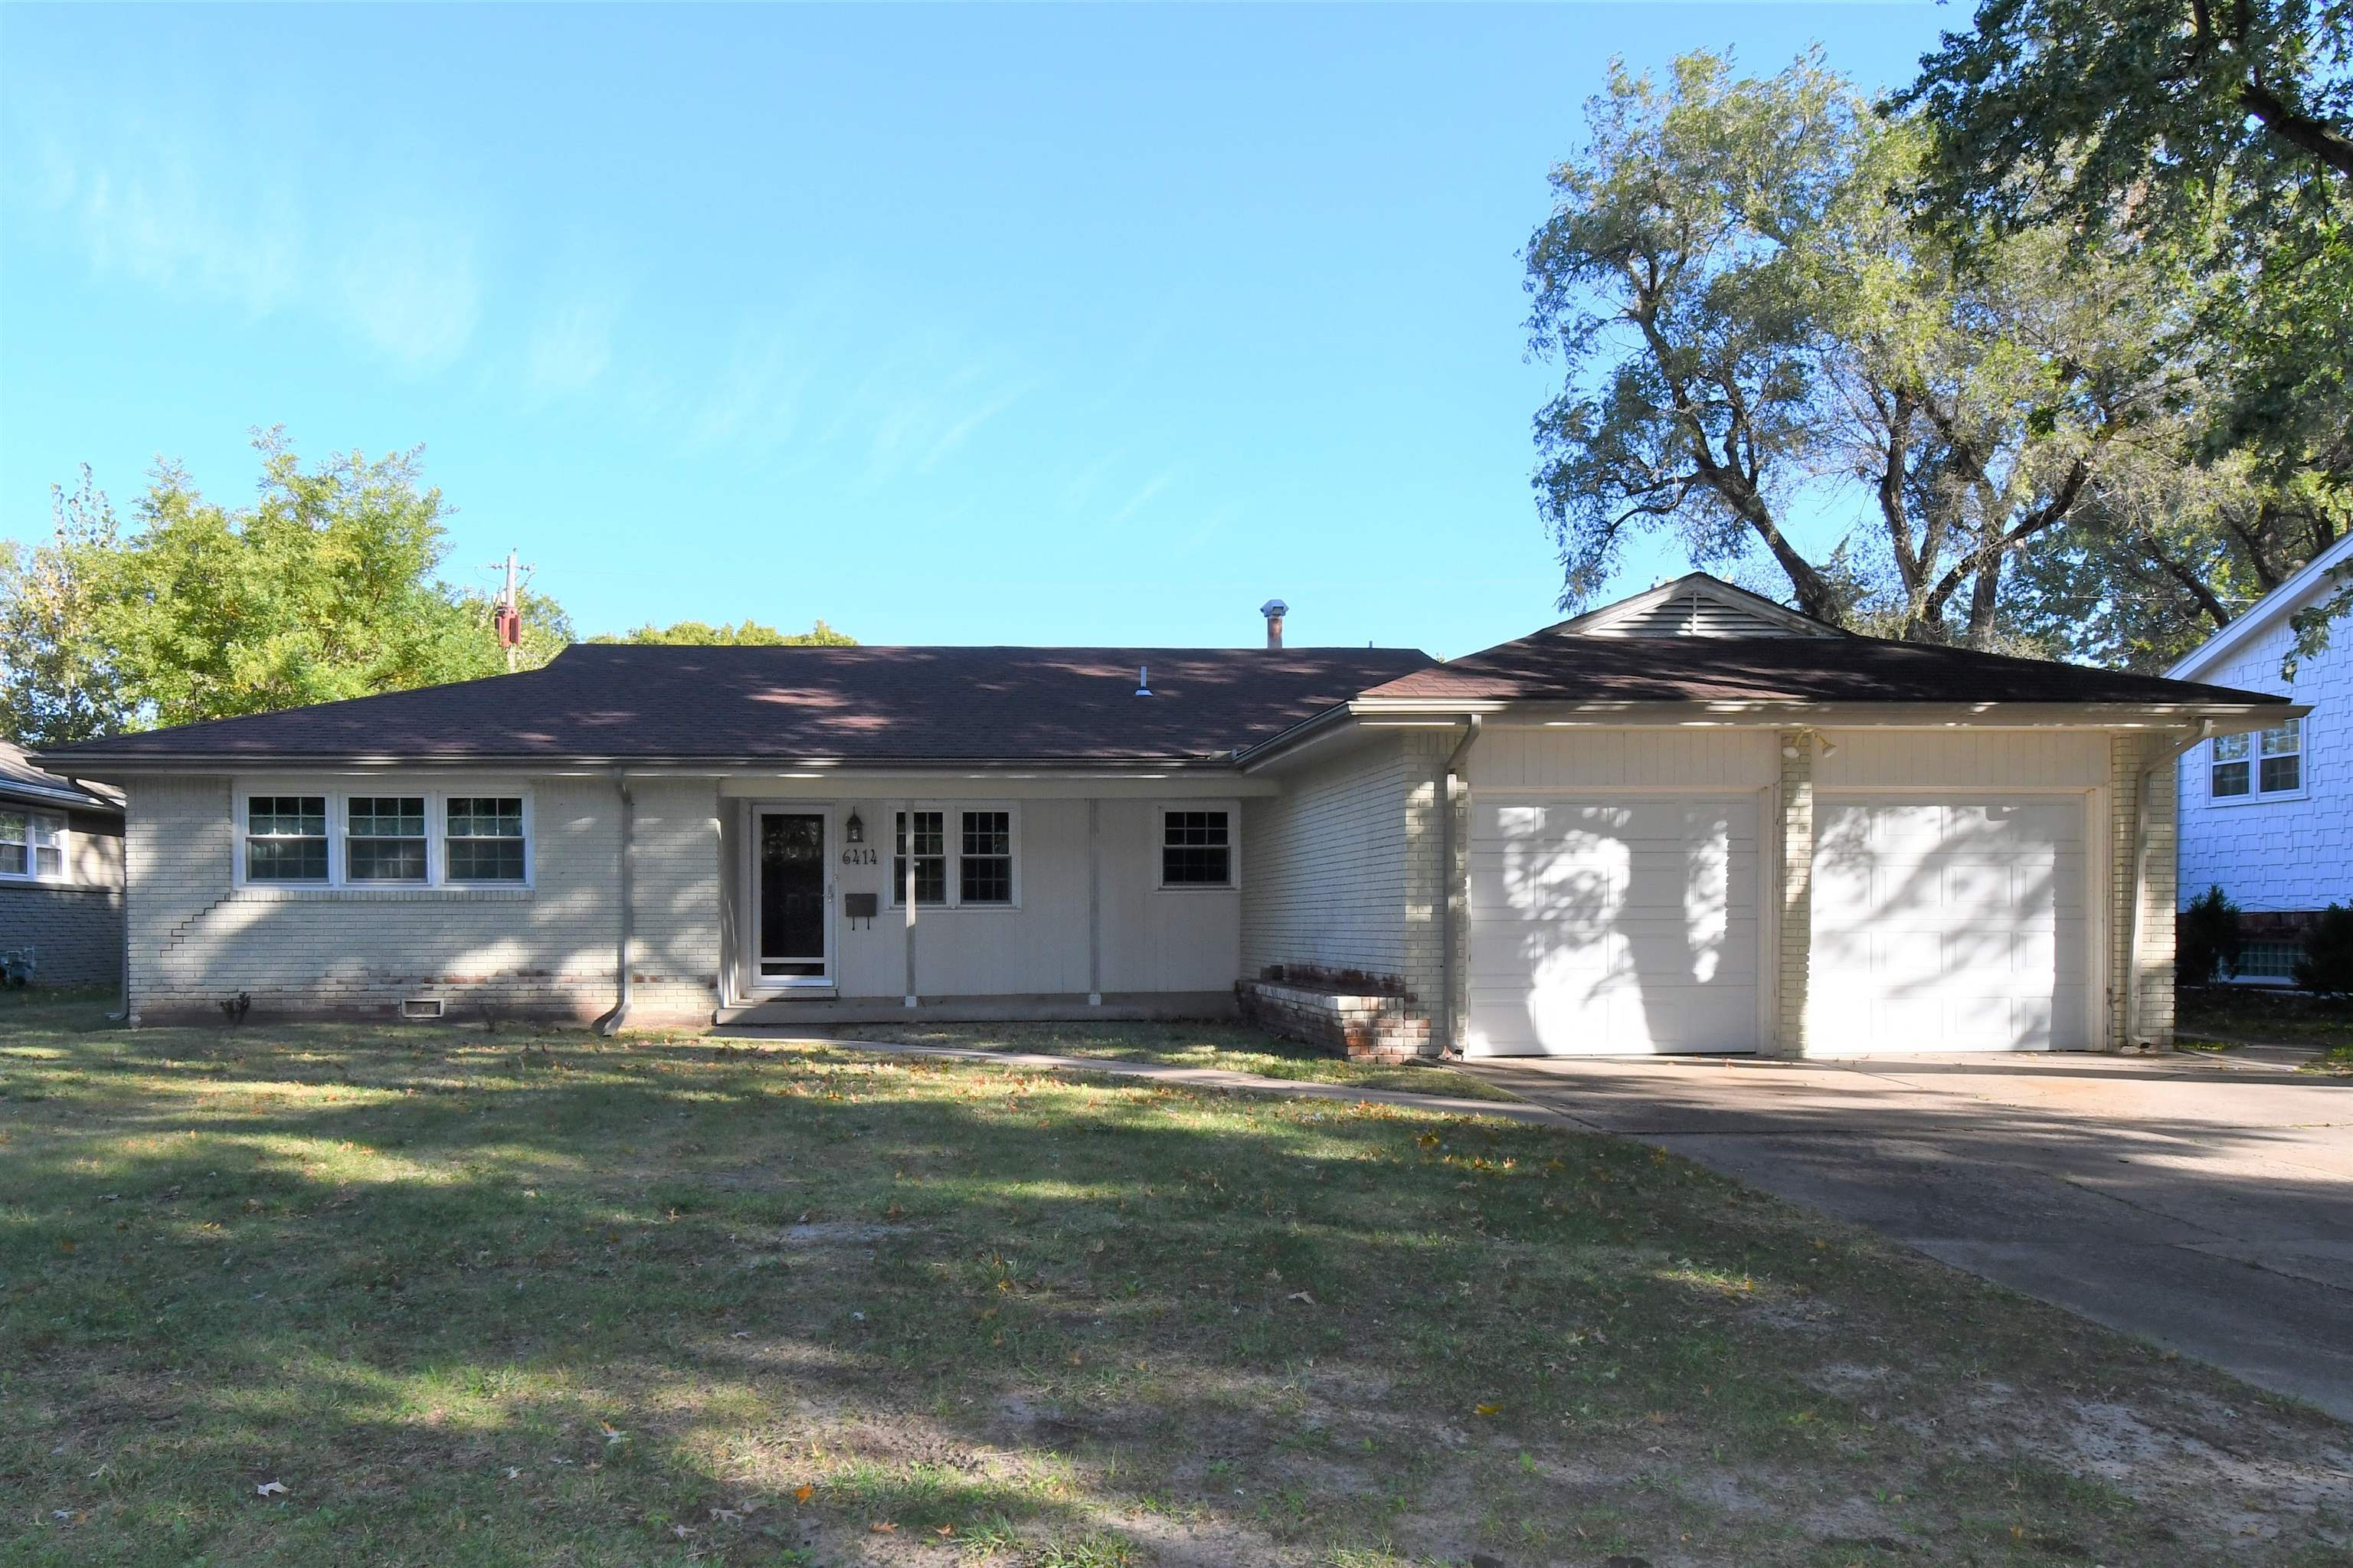 Wonderful 3 bedroom, 2 bath brick ranch located near shopping.  Home has newer HVAC, roof, electrical service.  Seller states that they have had foundation work done by Briggs Basement Foundation Repair.  13x9 shed/work shop out back.